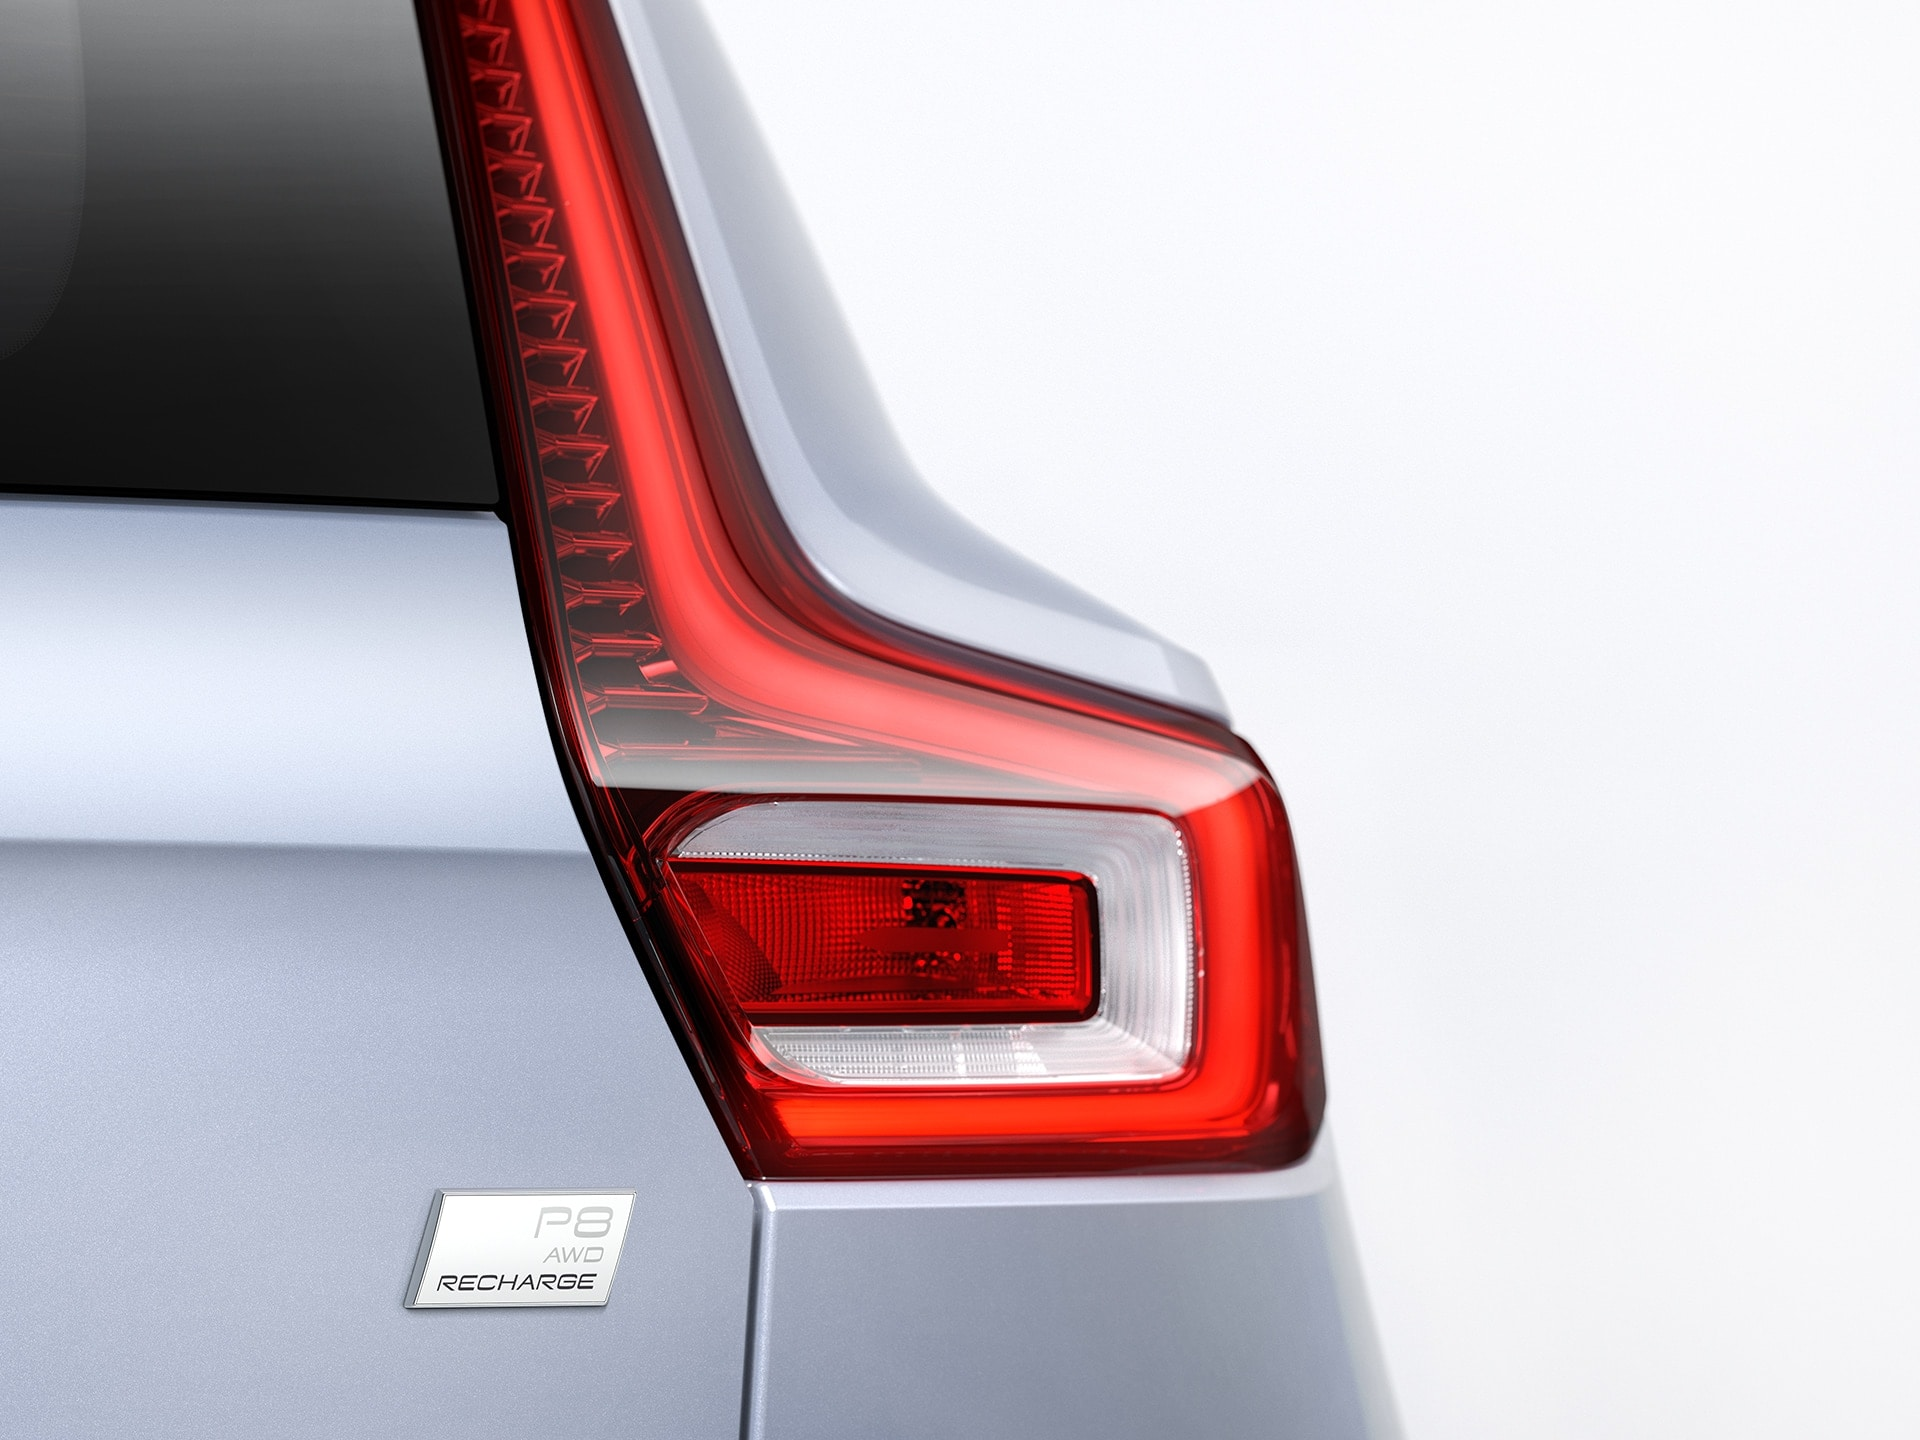 Detail of right taillight and Volvo Recharge badge on an XC40.